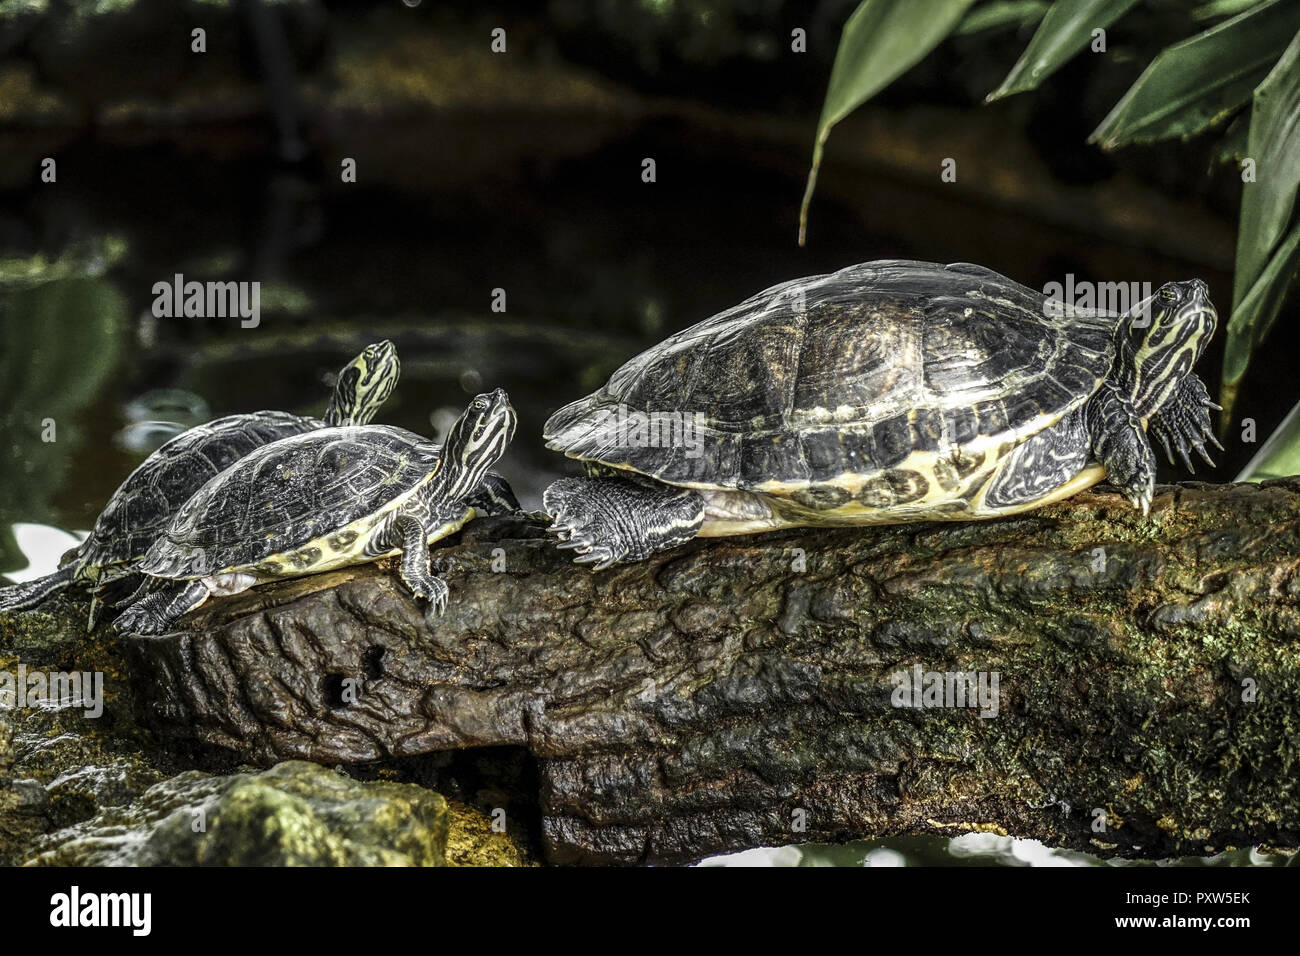 Wasserschildkröte im Gewächshaus, Botanischer Garten, München, Bayern, Deutschland, Turtle in the greenhouse, Botanical Garden, Munich, Bavaria, Germa - Stock Image